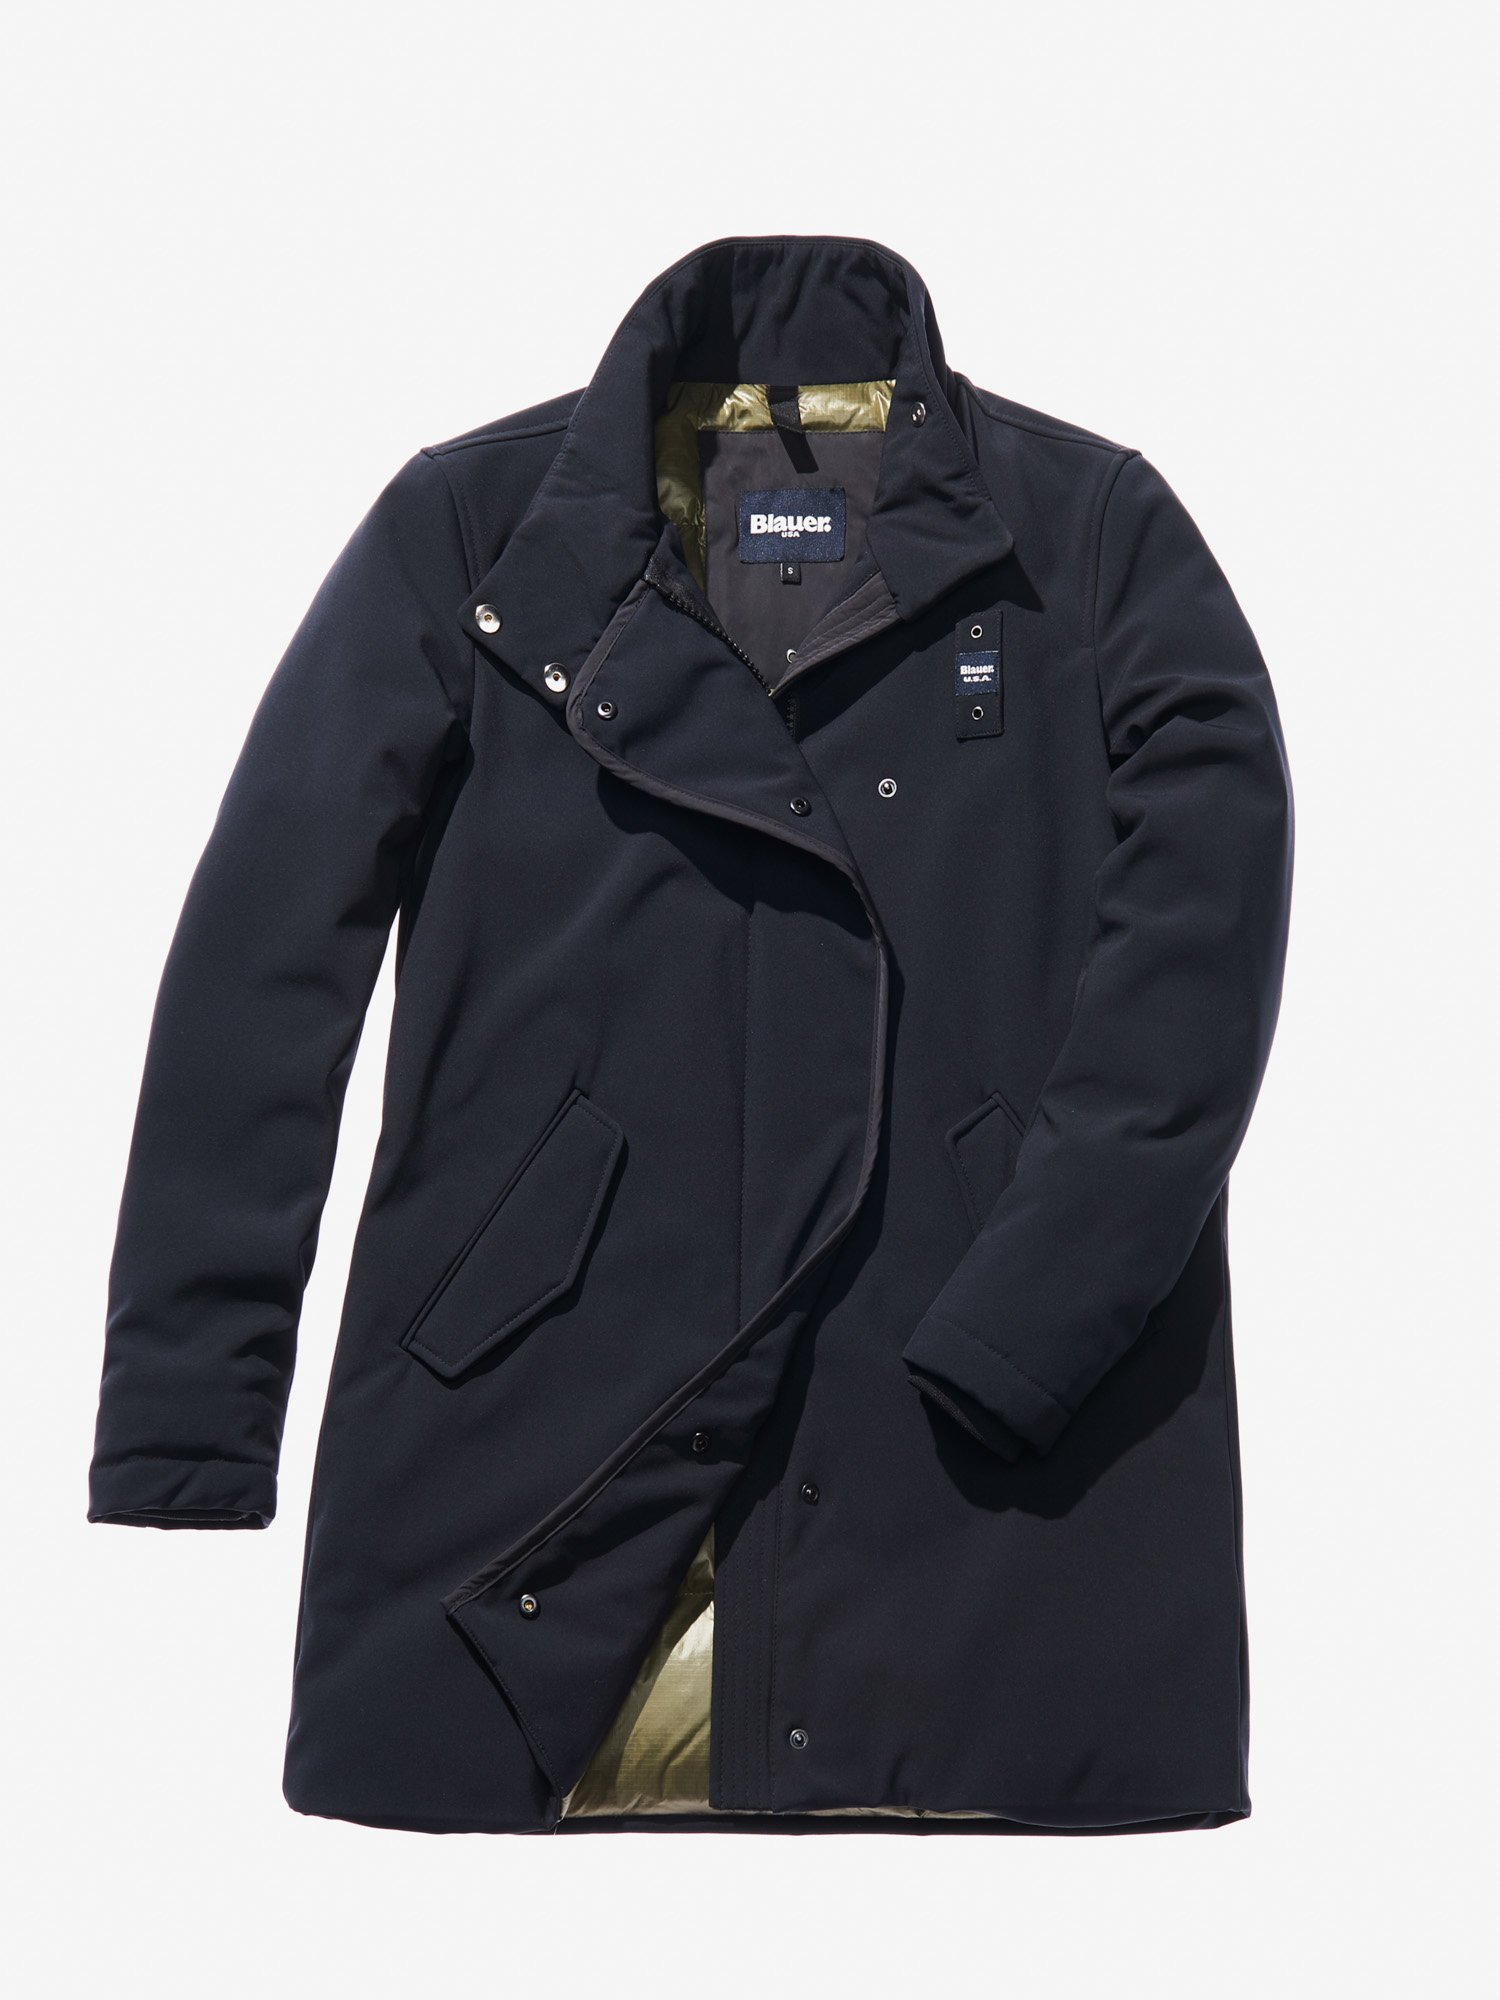 MIRIAM THREE-QUARTER JACKET - Blauer